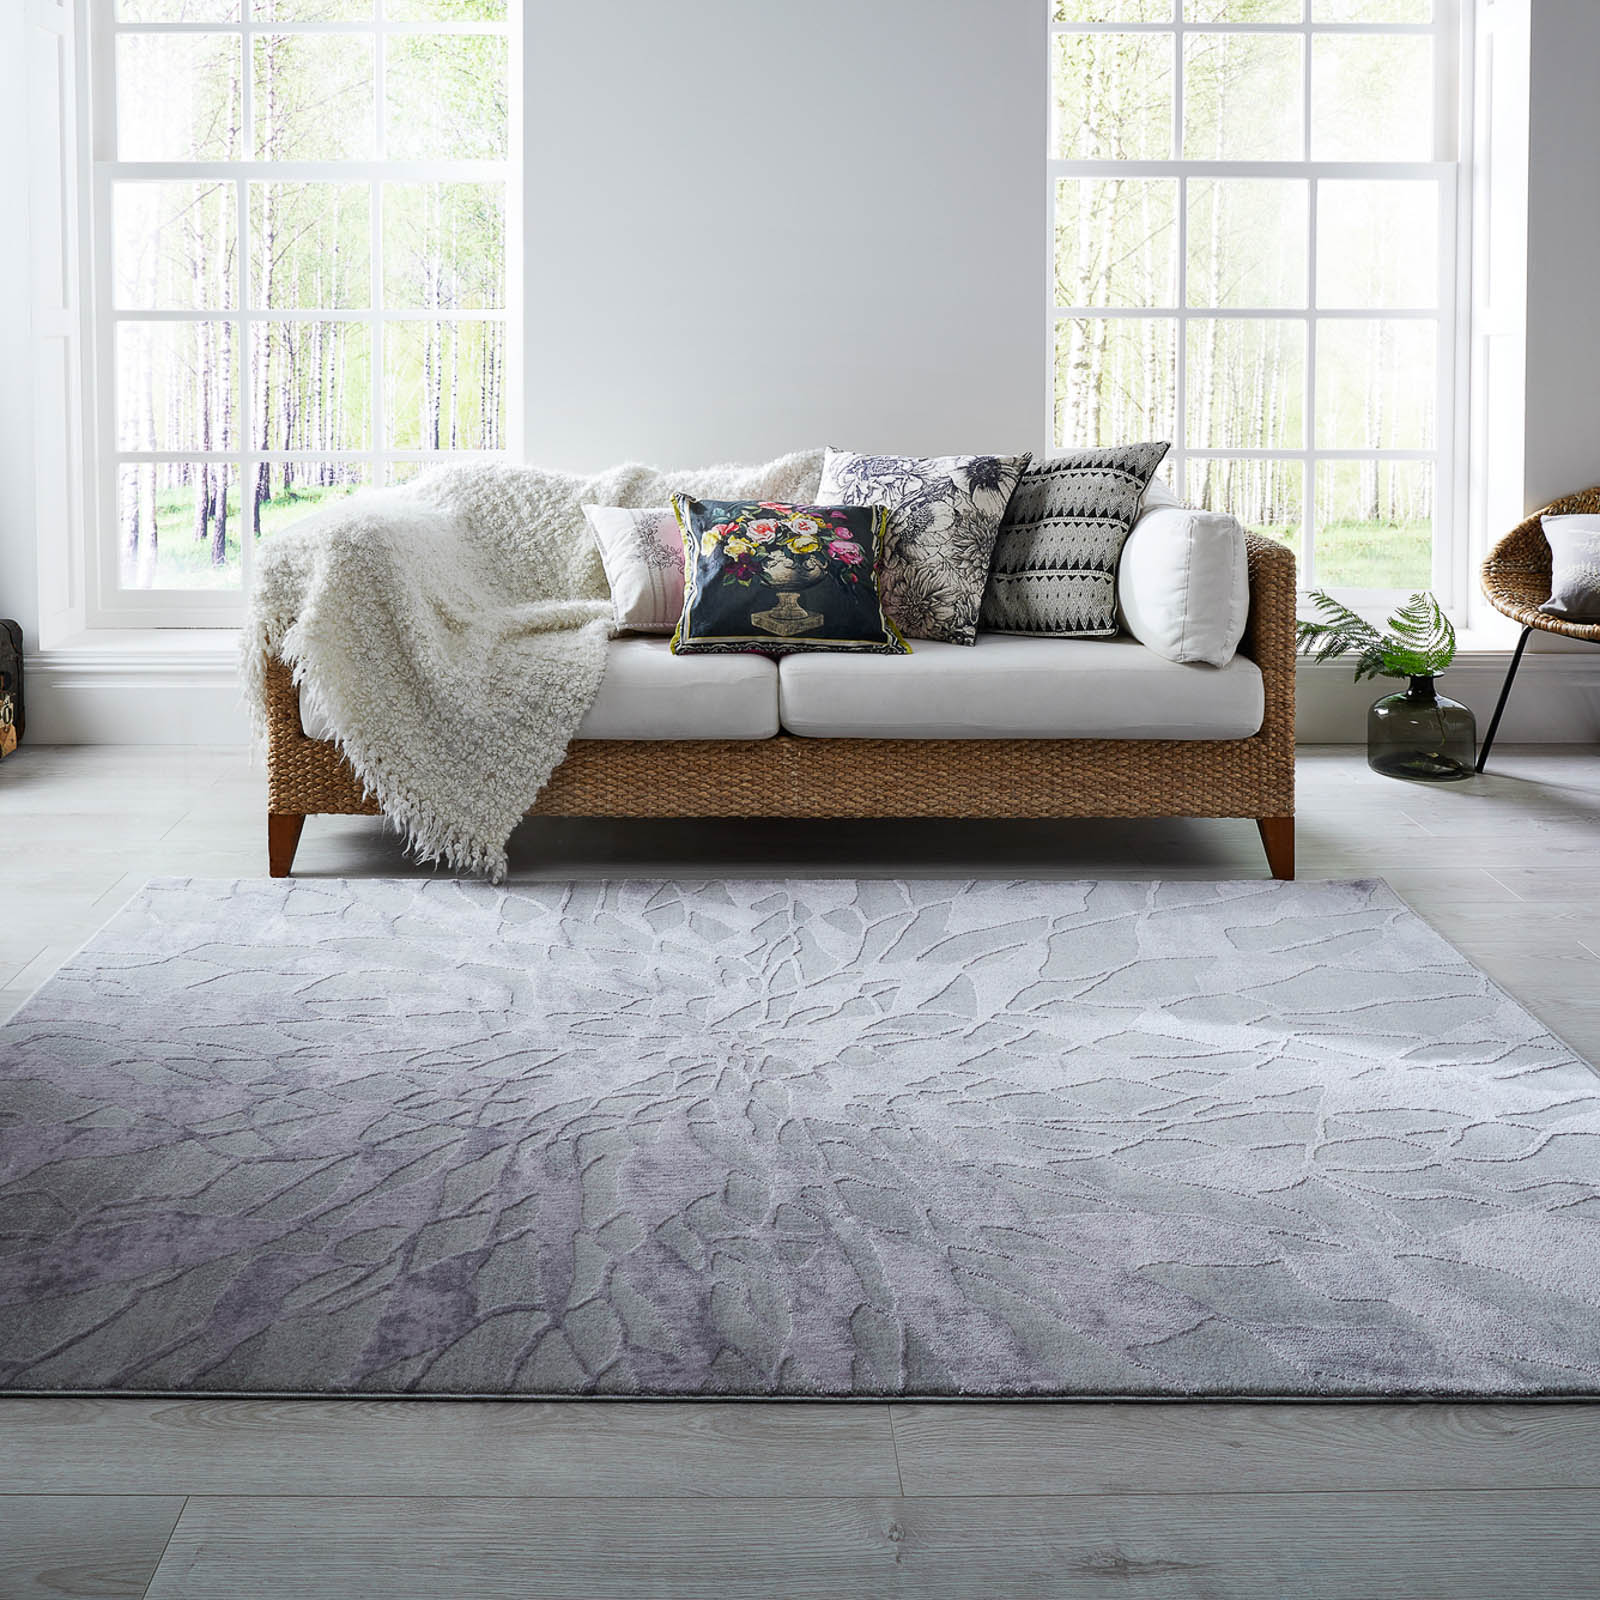 Alpaca Suri Rugs In Cream Buy Online From The Rug Seller Uk